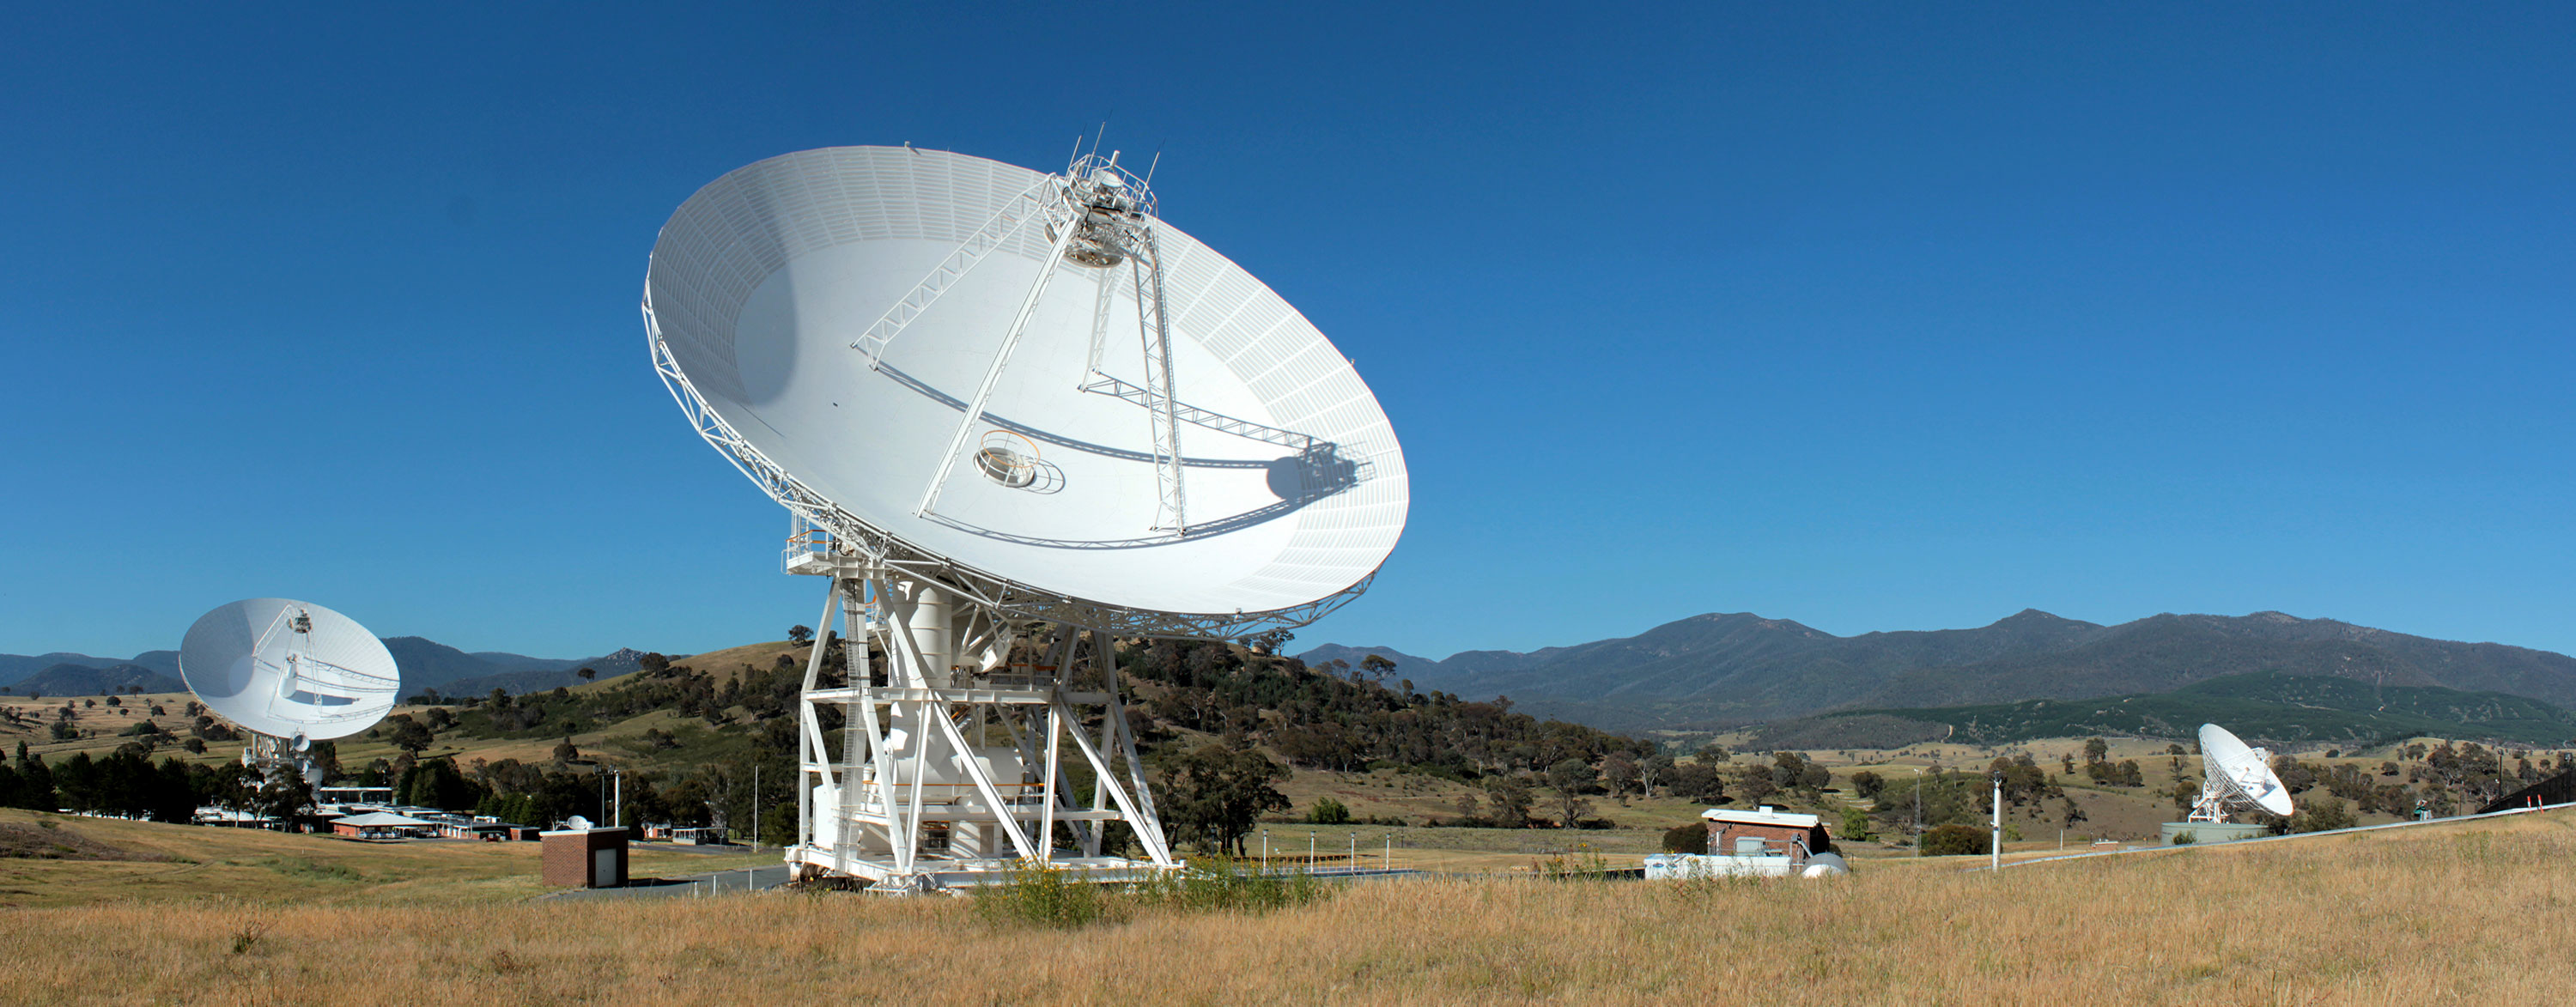 Deep Space Listening: Antennas at the Canberra Deep Space Communication Complex in contact with NASA's MAVEN spacecraft as it started its journey to the red planet. Photo: K.McDonnell